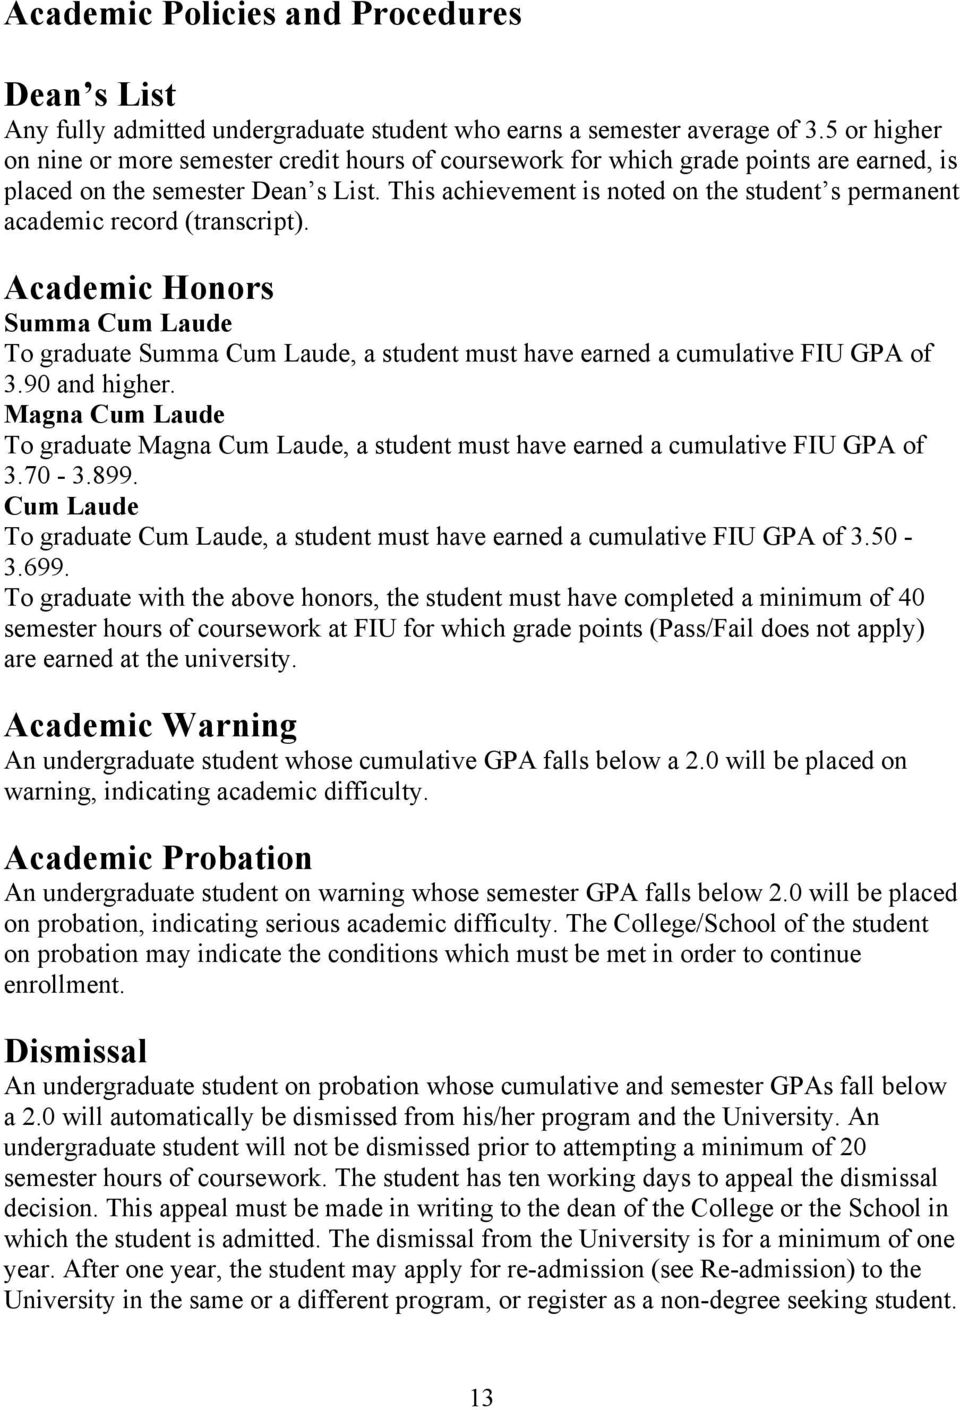 This achievement is noted on the student s permanent academic record (transcript). Academic Honors Summa Cum Laude To graduate Summa Cum Laude, a student must have earned a cumulative FIU GPA of 3.